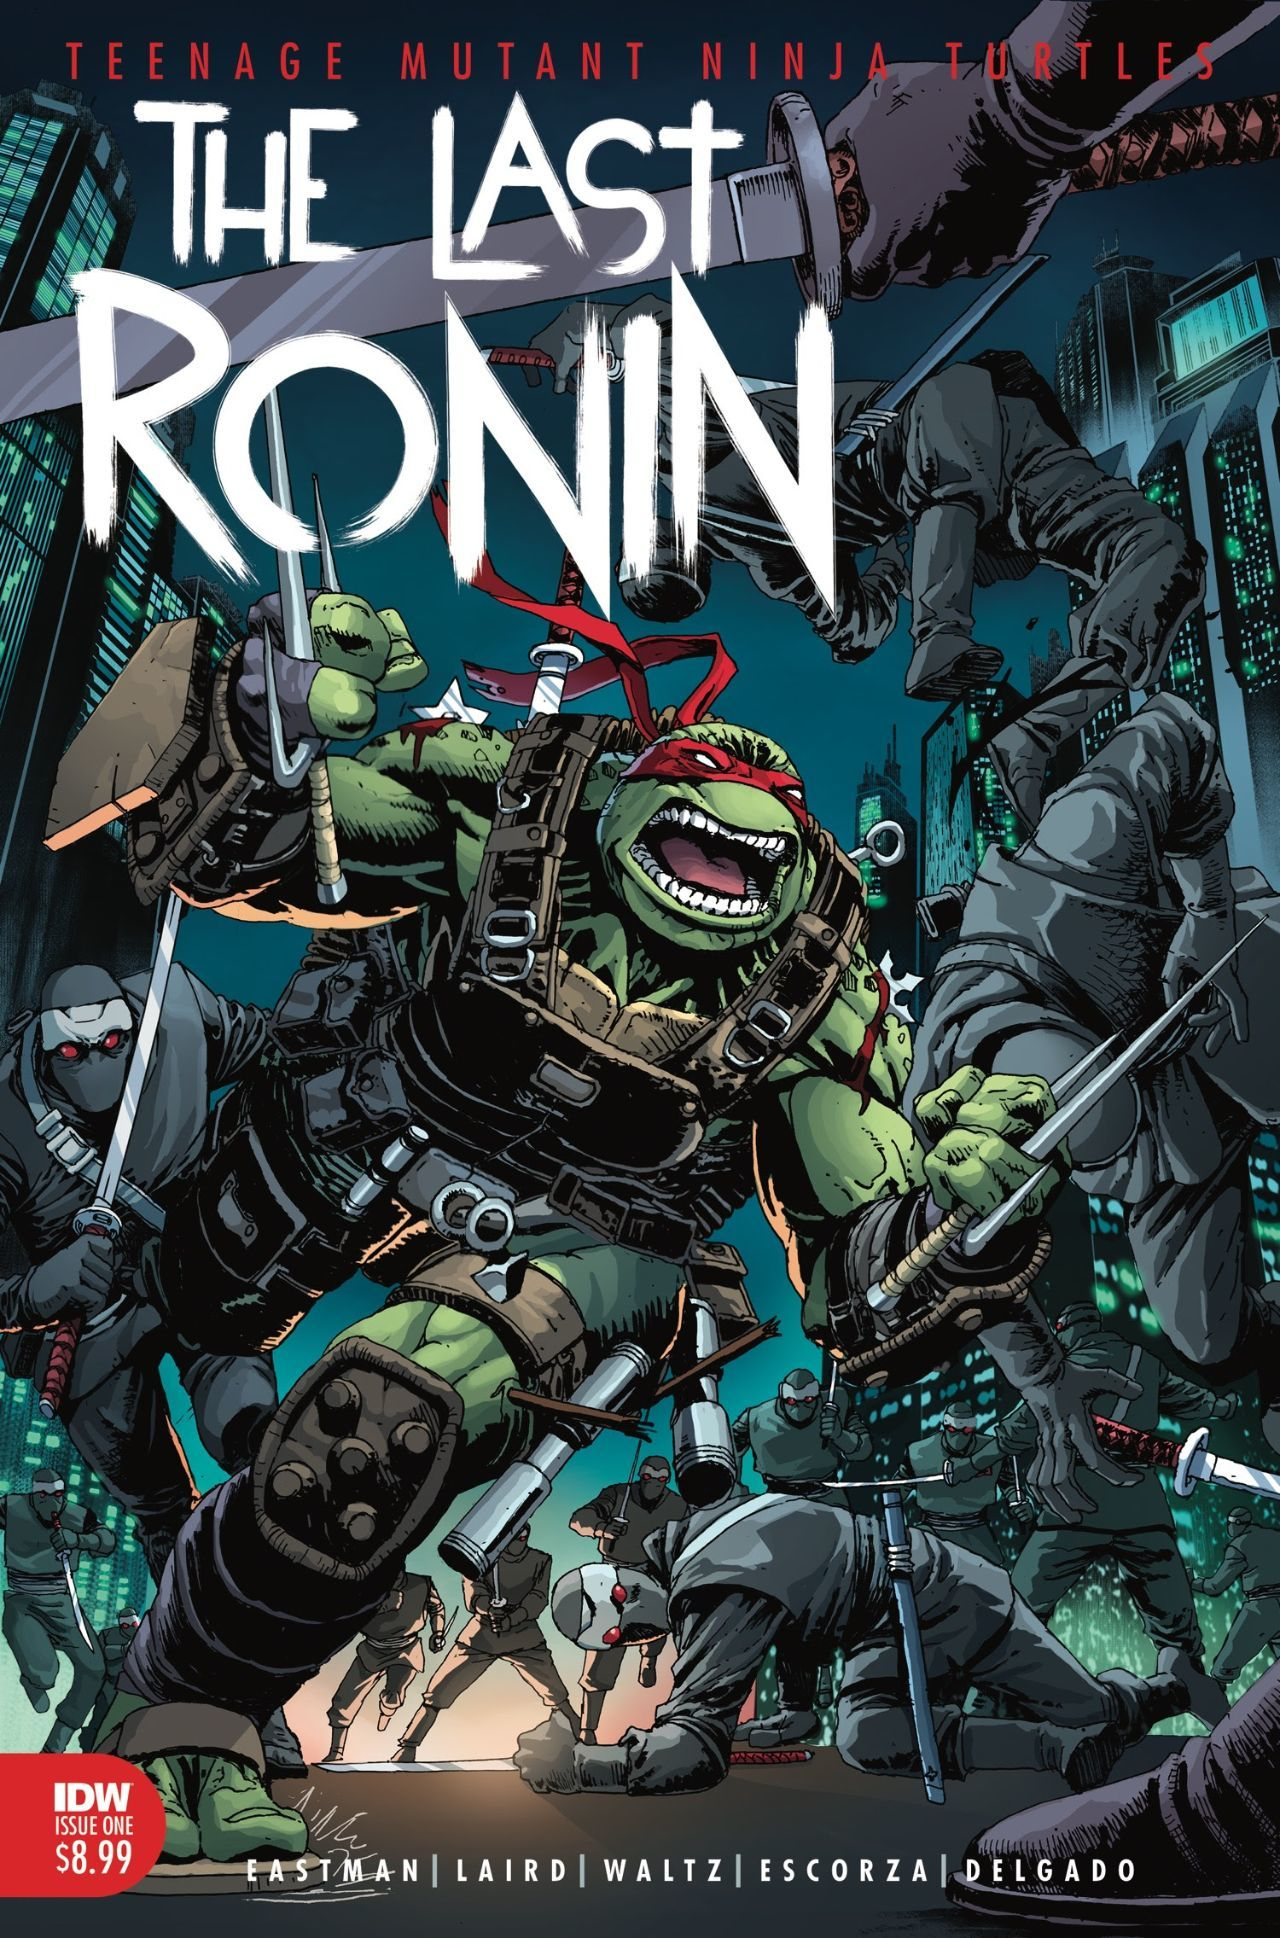 Eastman e Laird's Teenage Mutant Ninja Turtles: The Last Ronin terá uma segunda tiragem 1